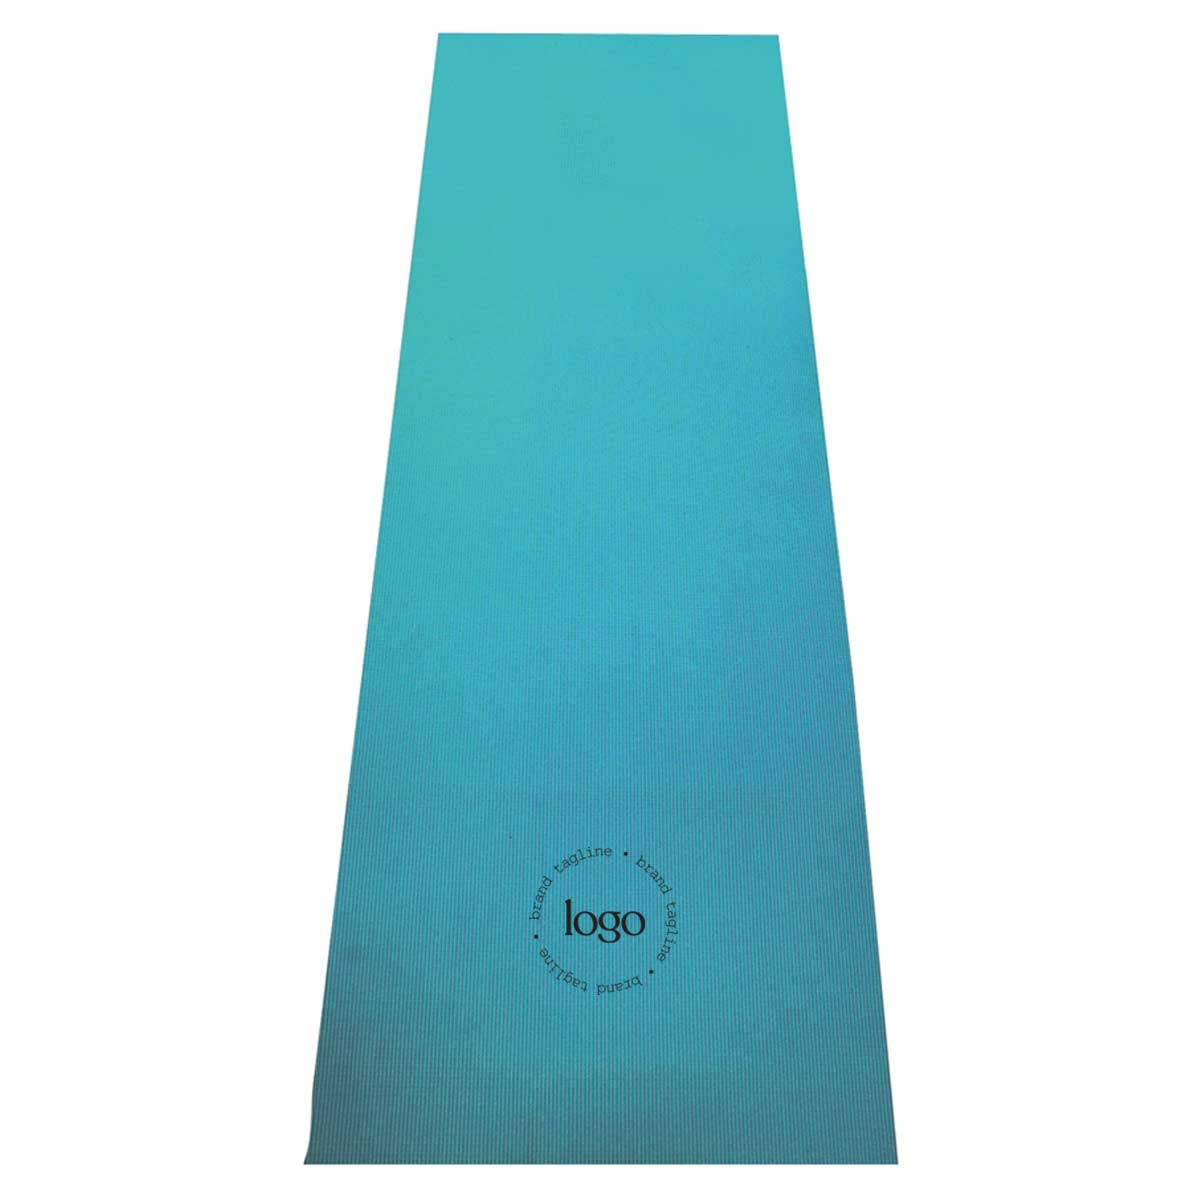 298638 yoga mat case one color one location imprint on mat